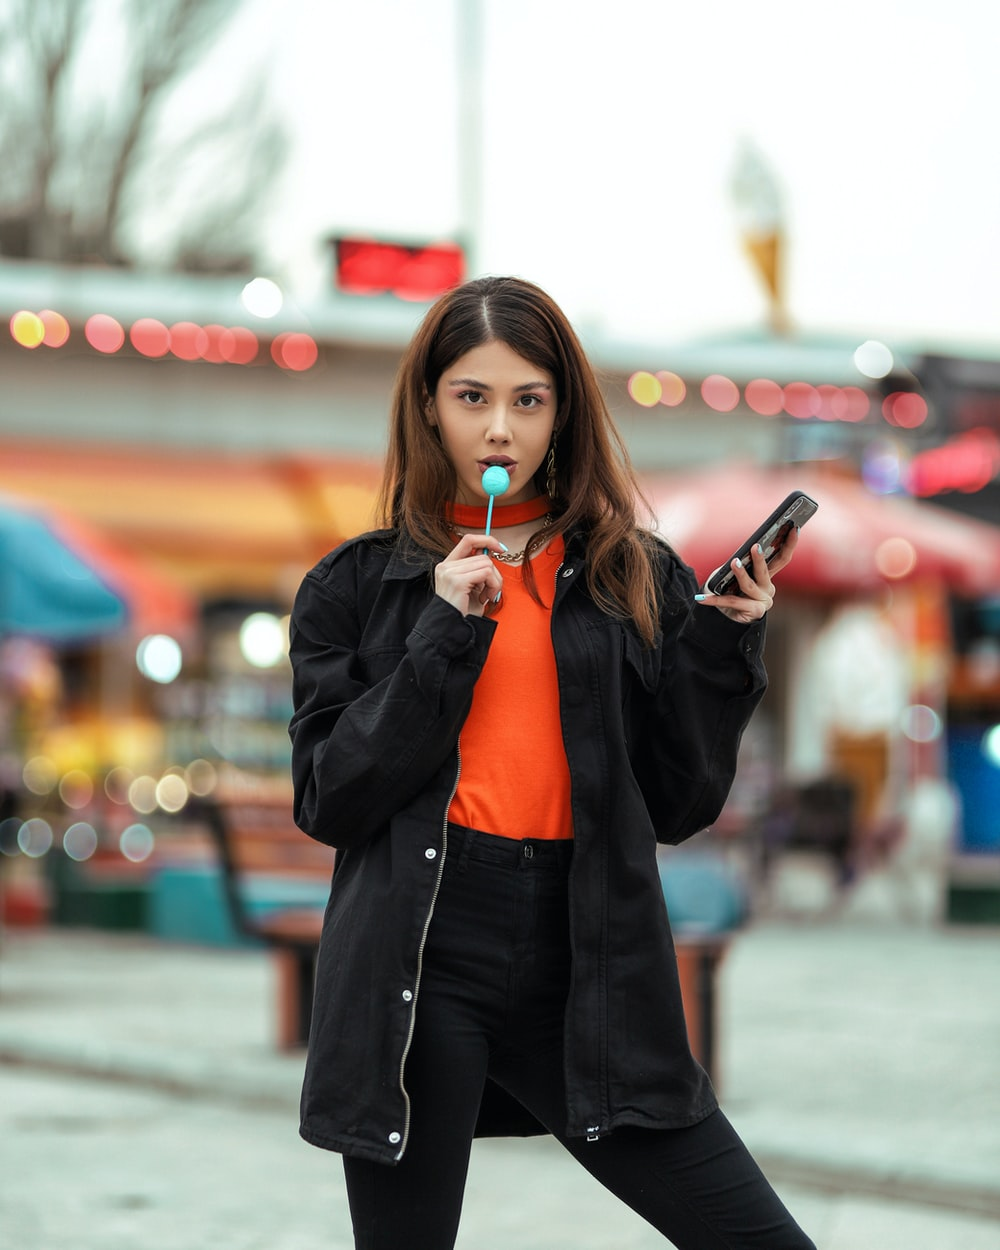 woman in red blazer holding smartphone